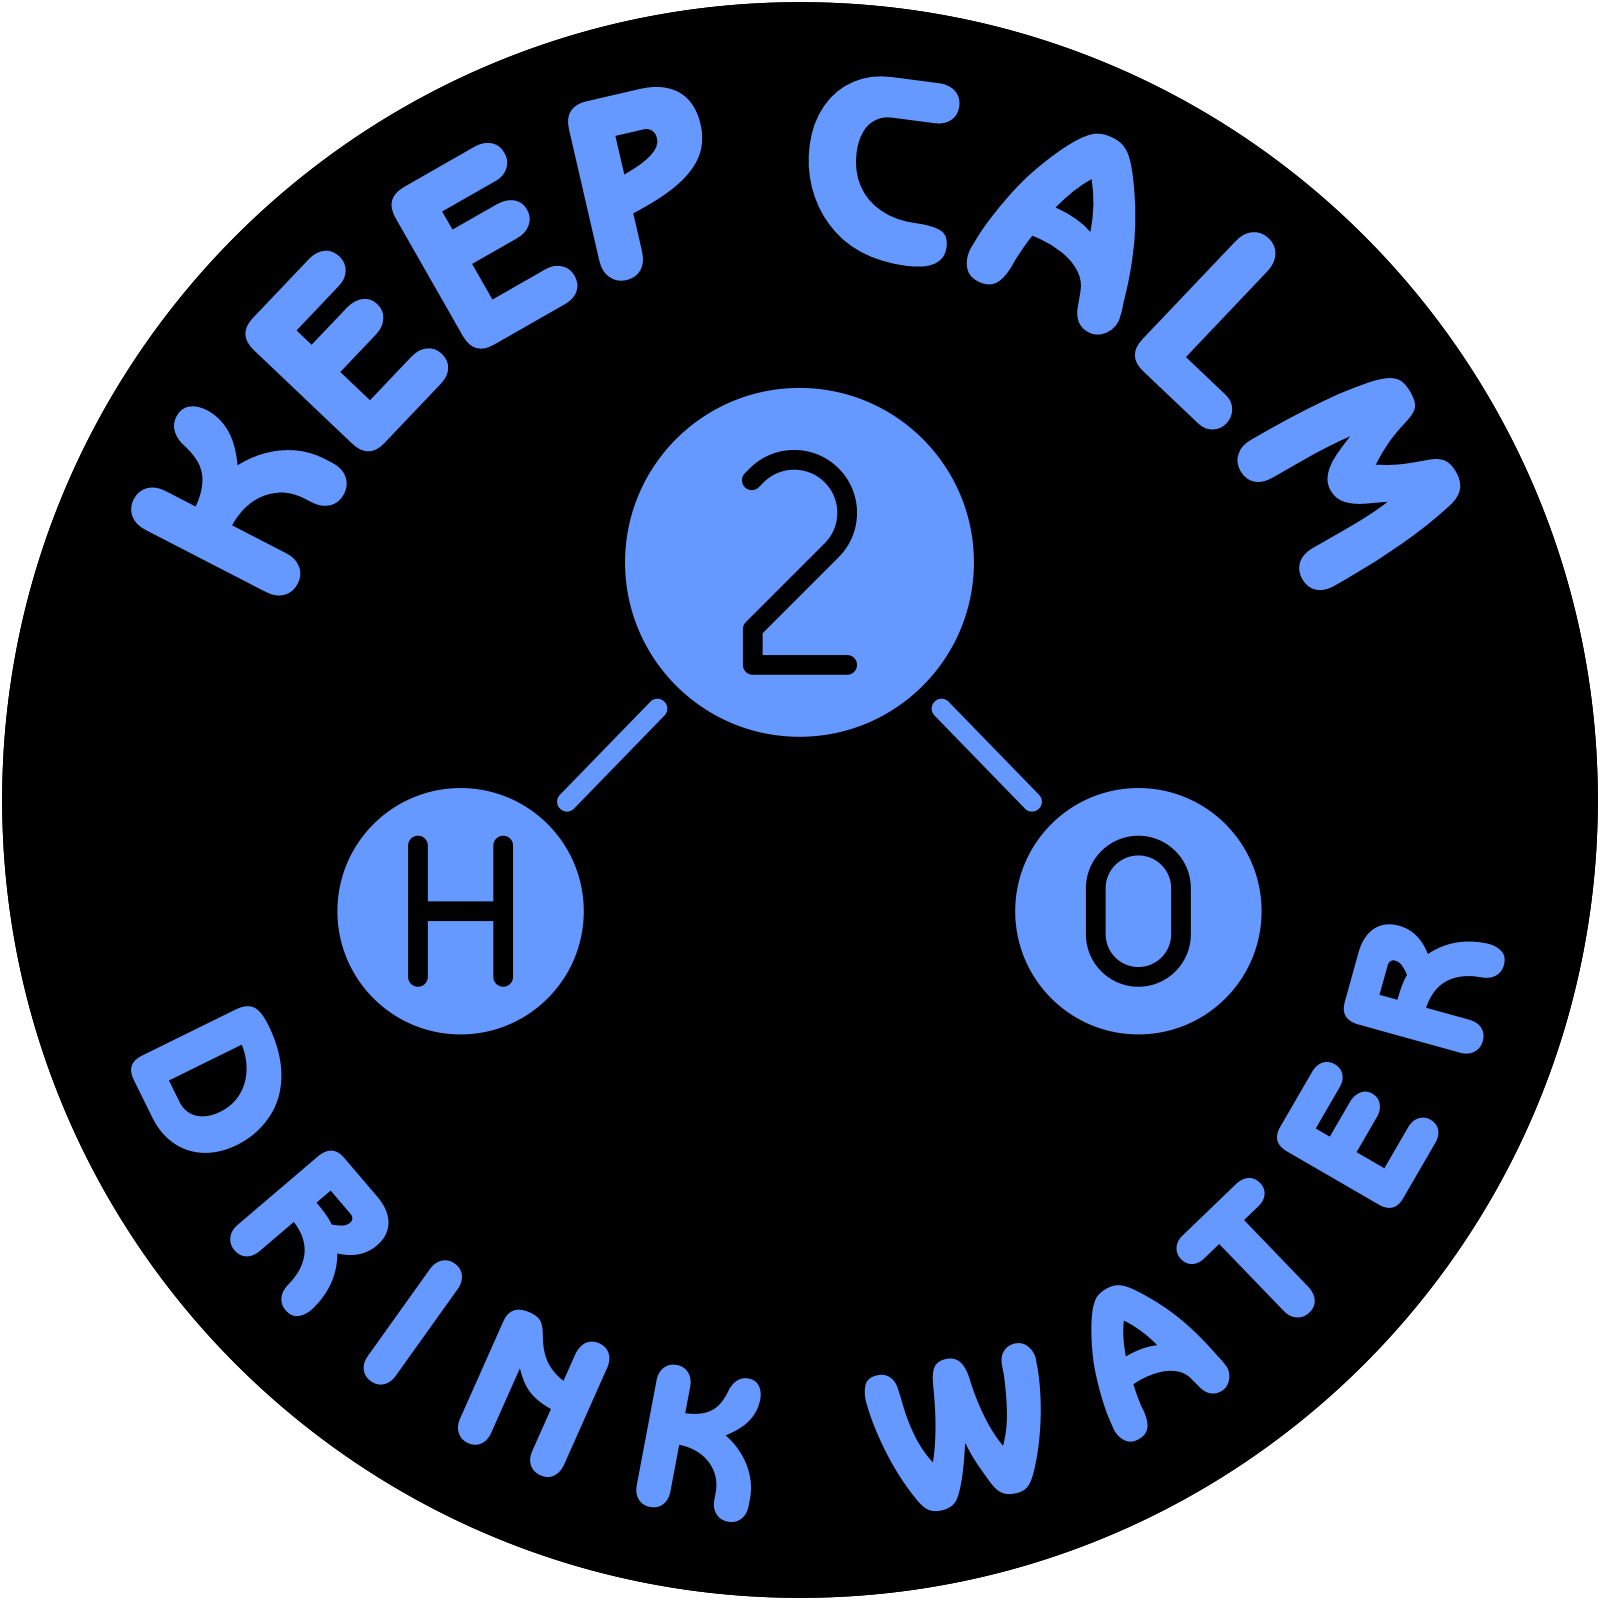 Keep Calm and Drink WATER